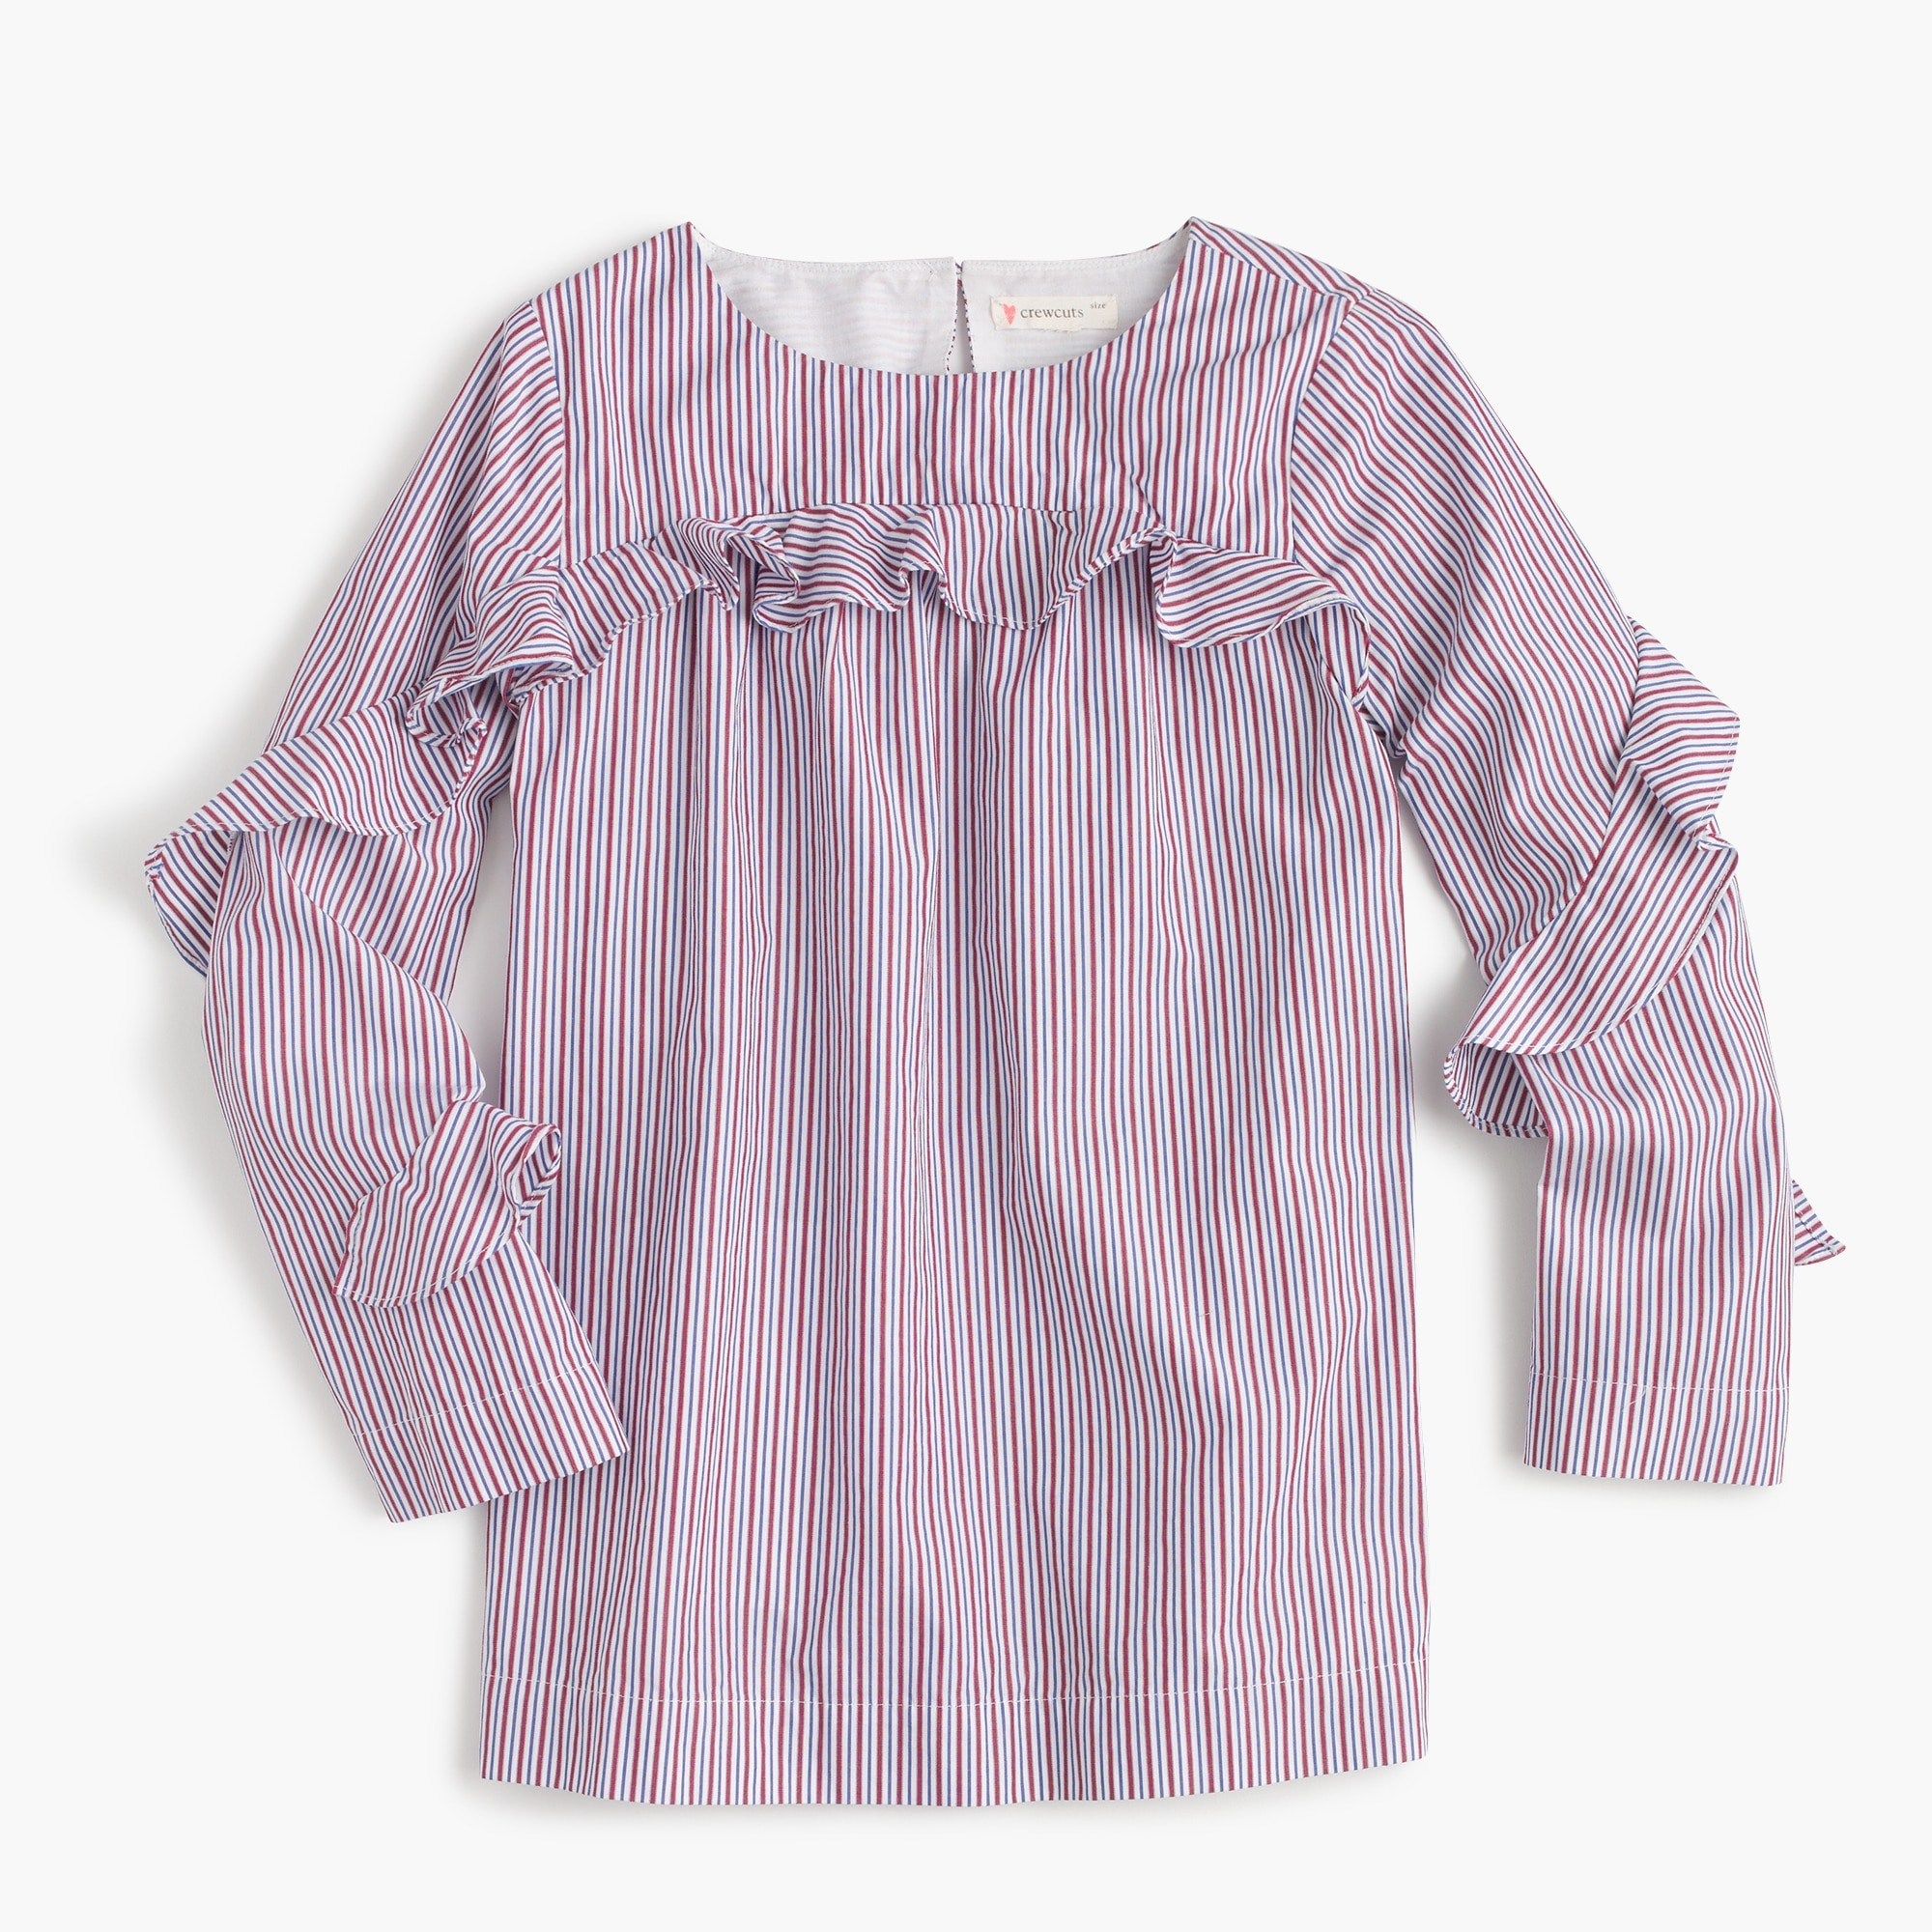 Girls' ruffle long-sleeve top in stripes